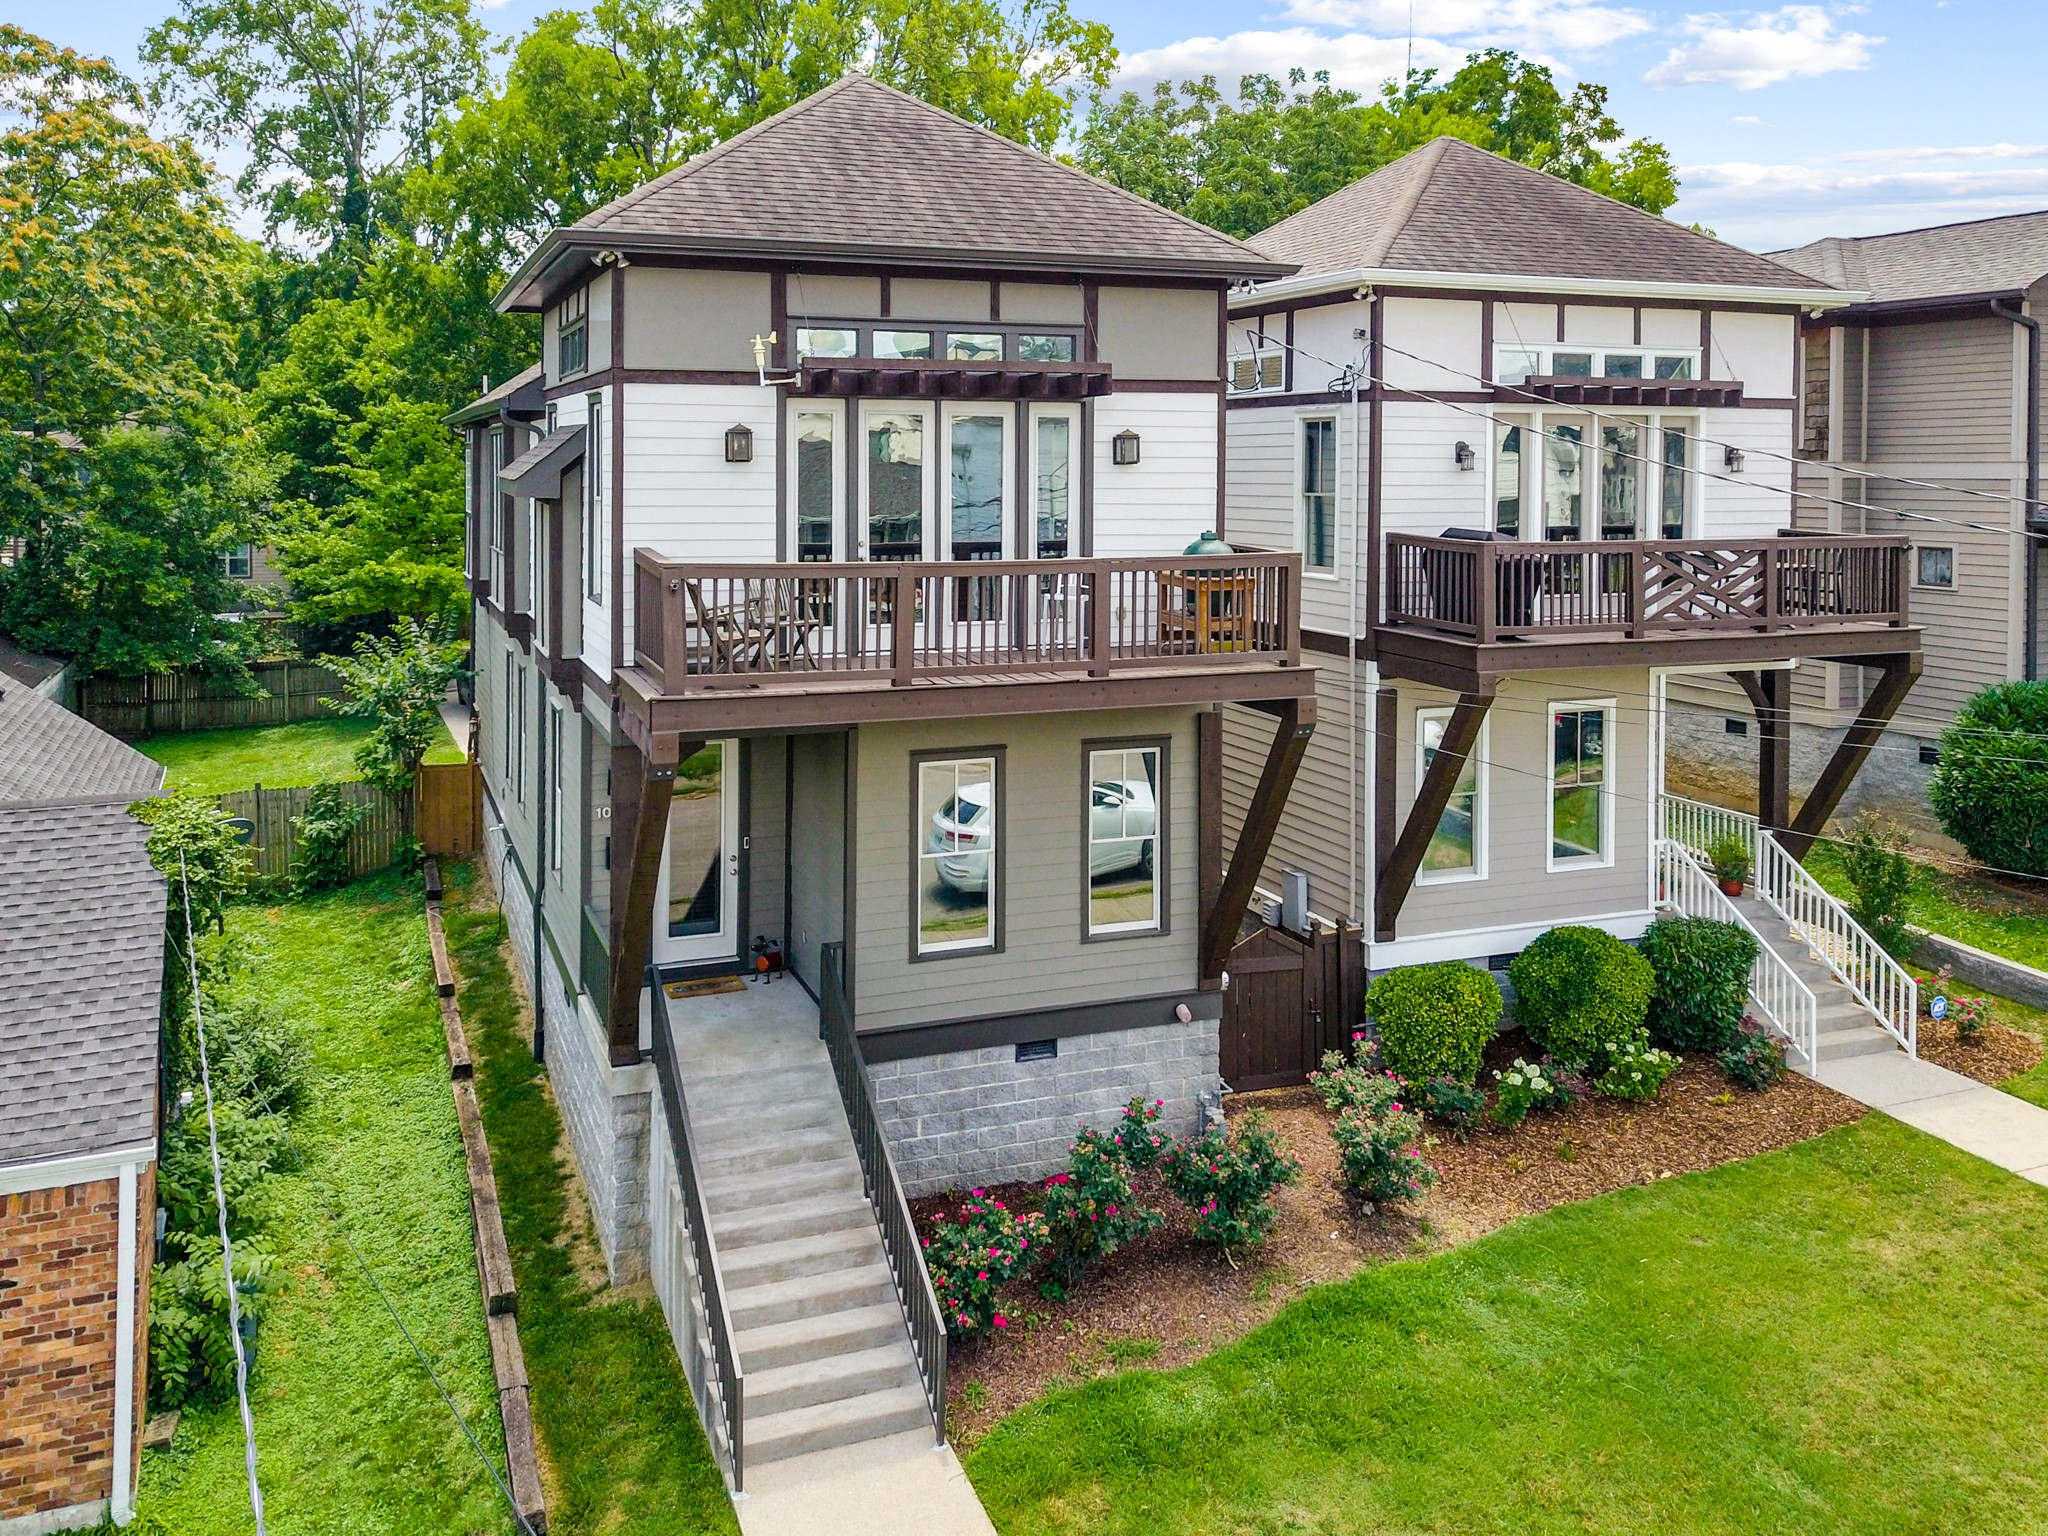 1013A W Grove Ave Property Photo - Nashville, TN real estate listing